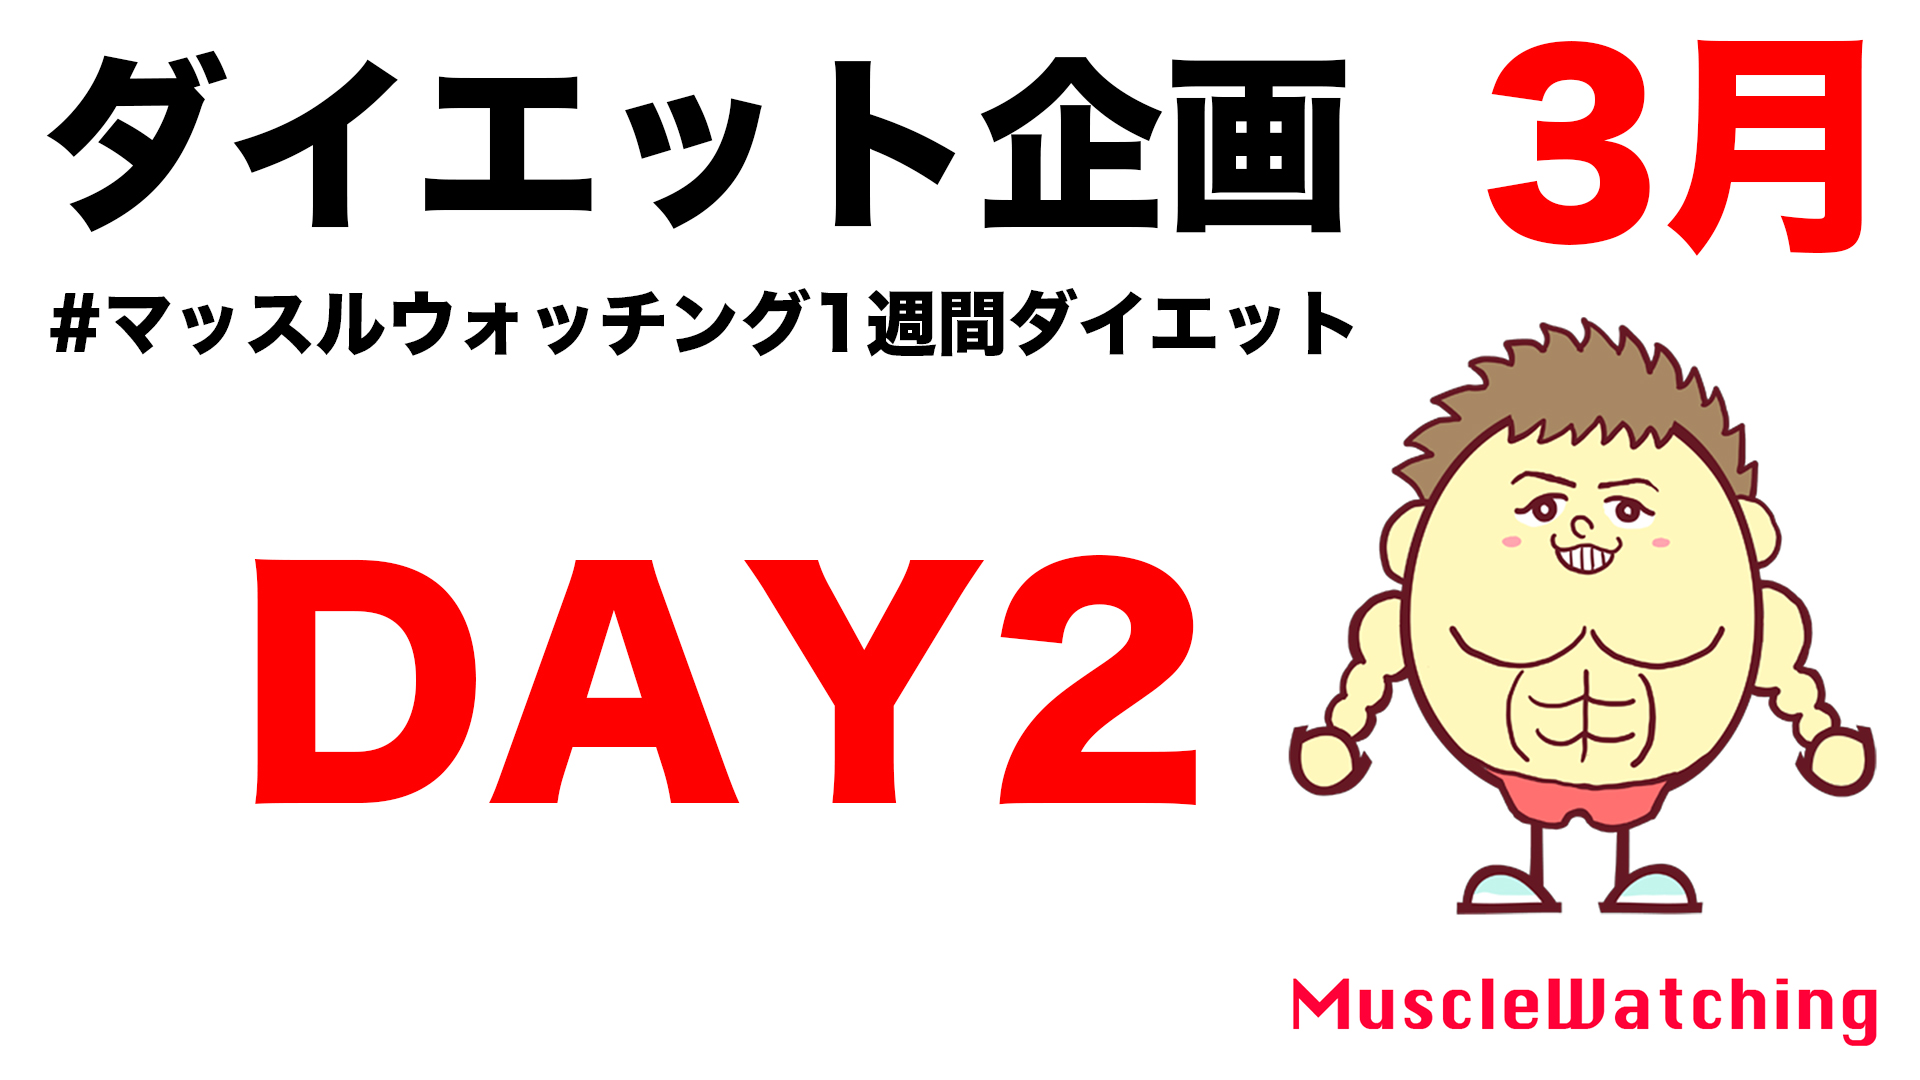 【DAY2】女性限定1週間ダイエット企画 3月| Muscle Watching